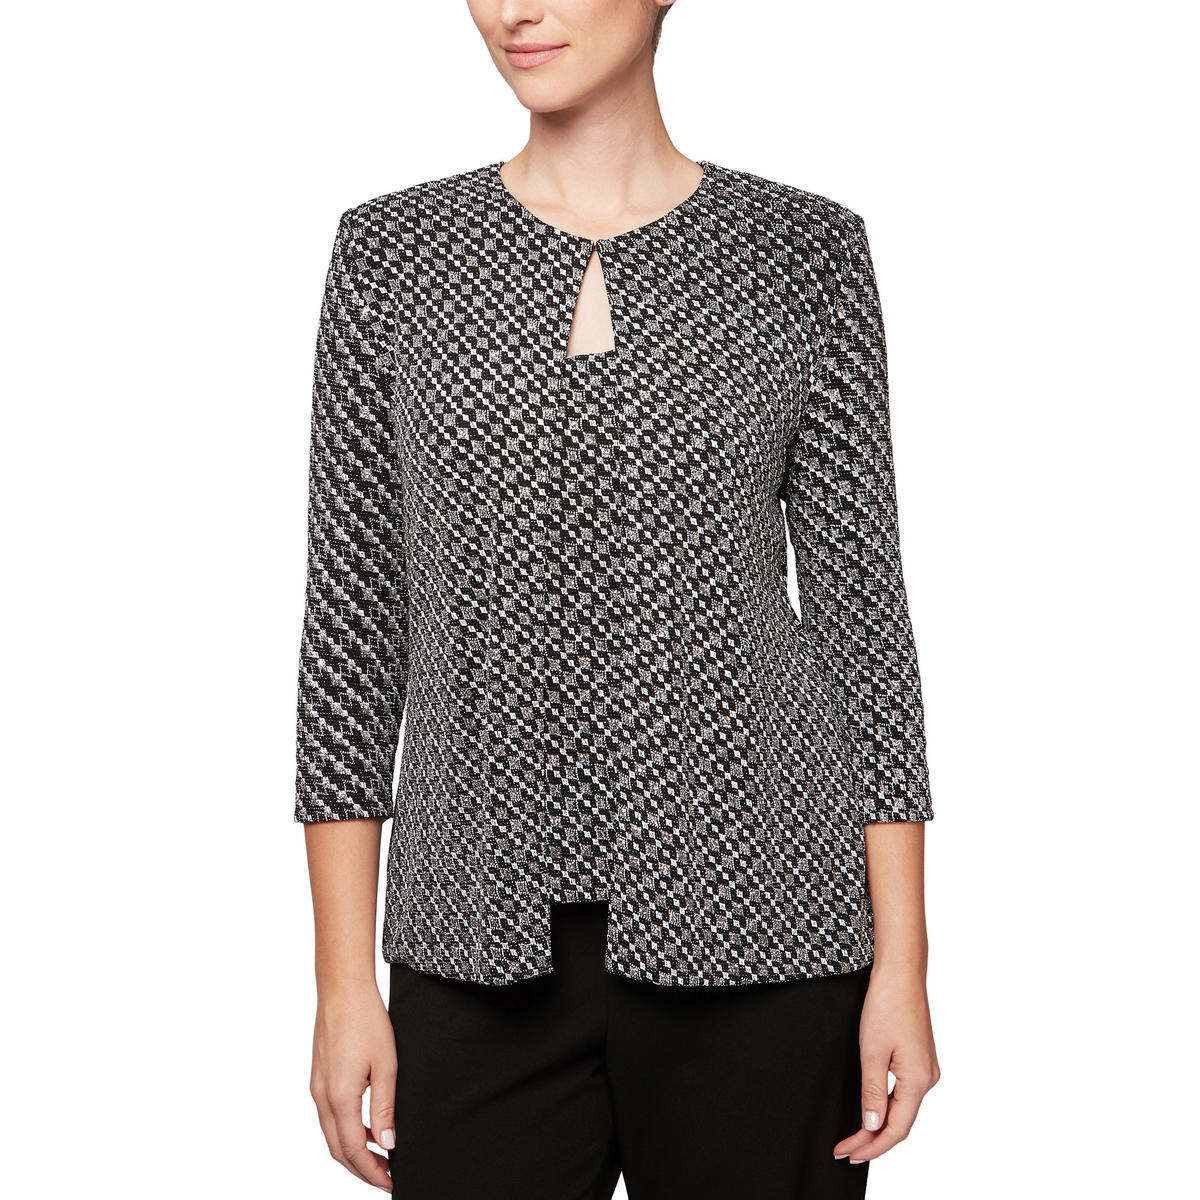 ALEX APPAREL GROUP INC - Printed Metallic Jacket & Camisole Set